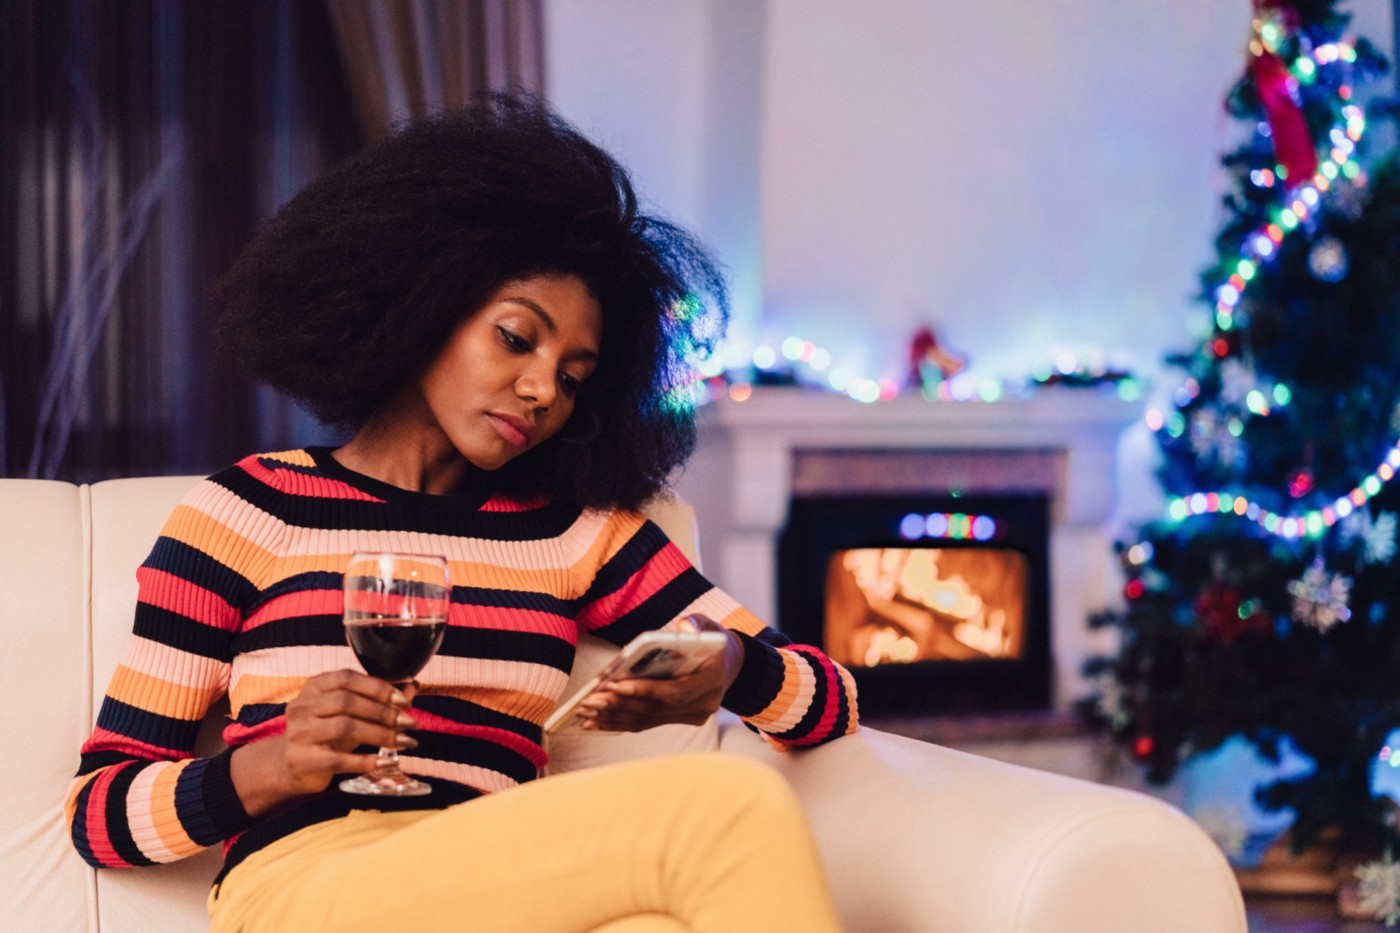 Bored woman looking at her phone holding a wine glass.